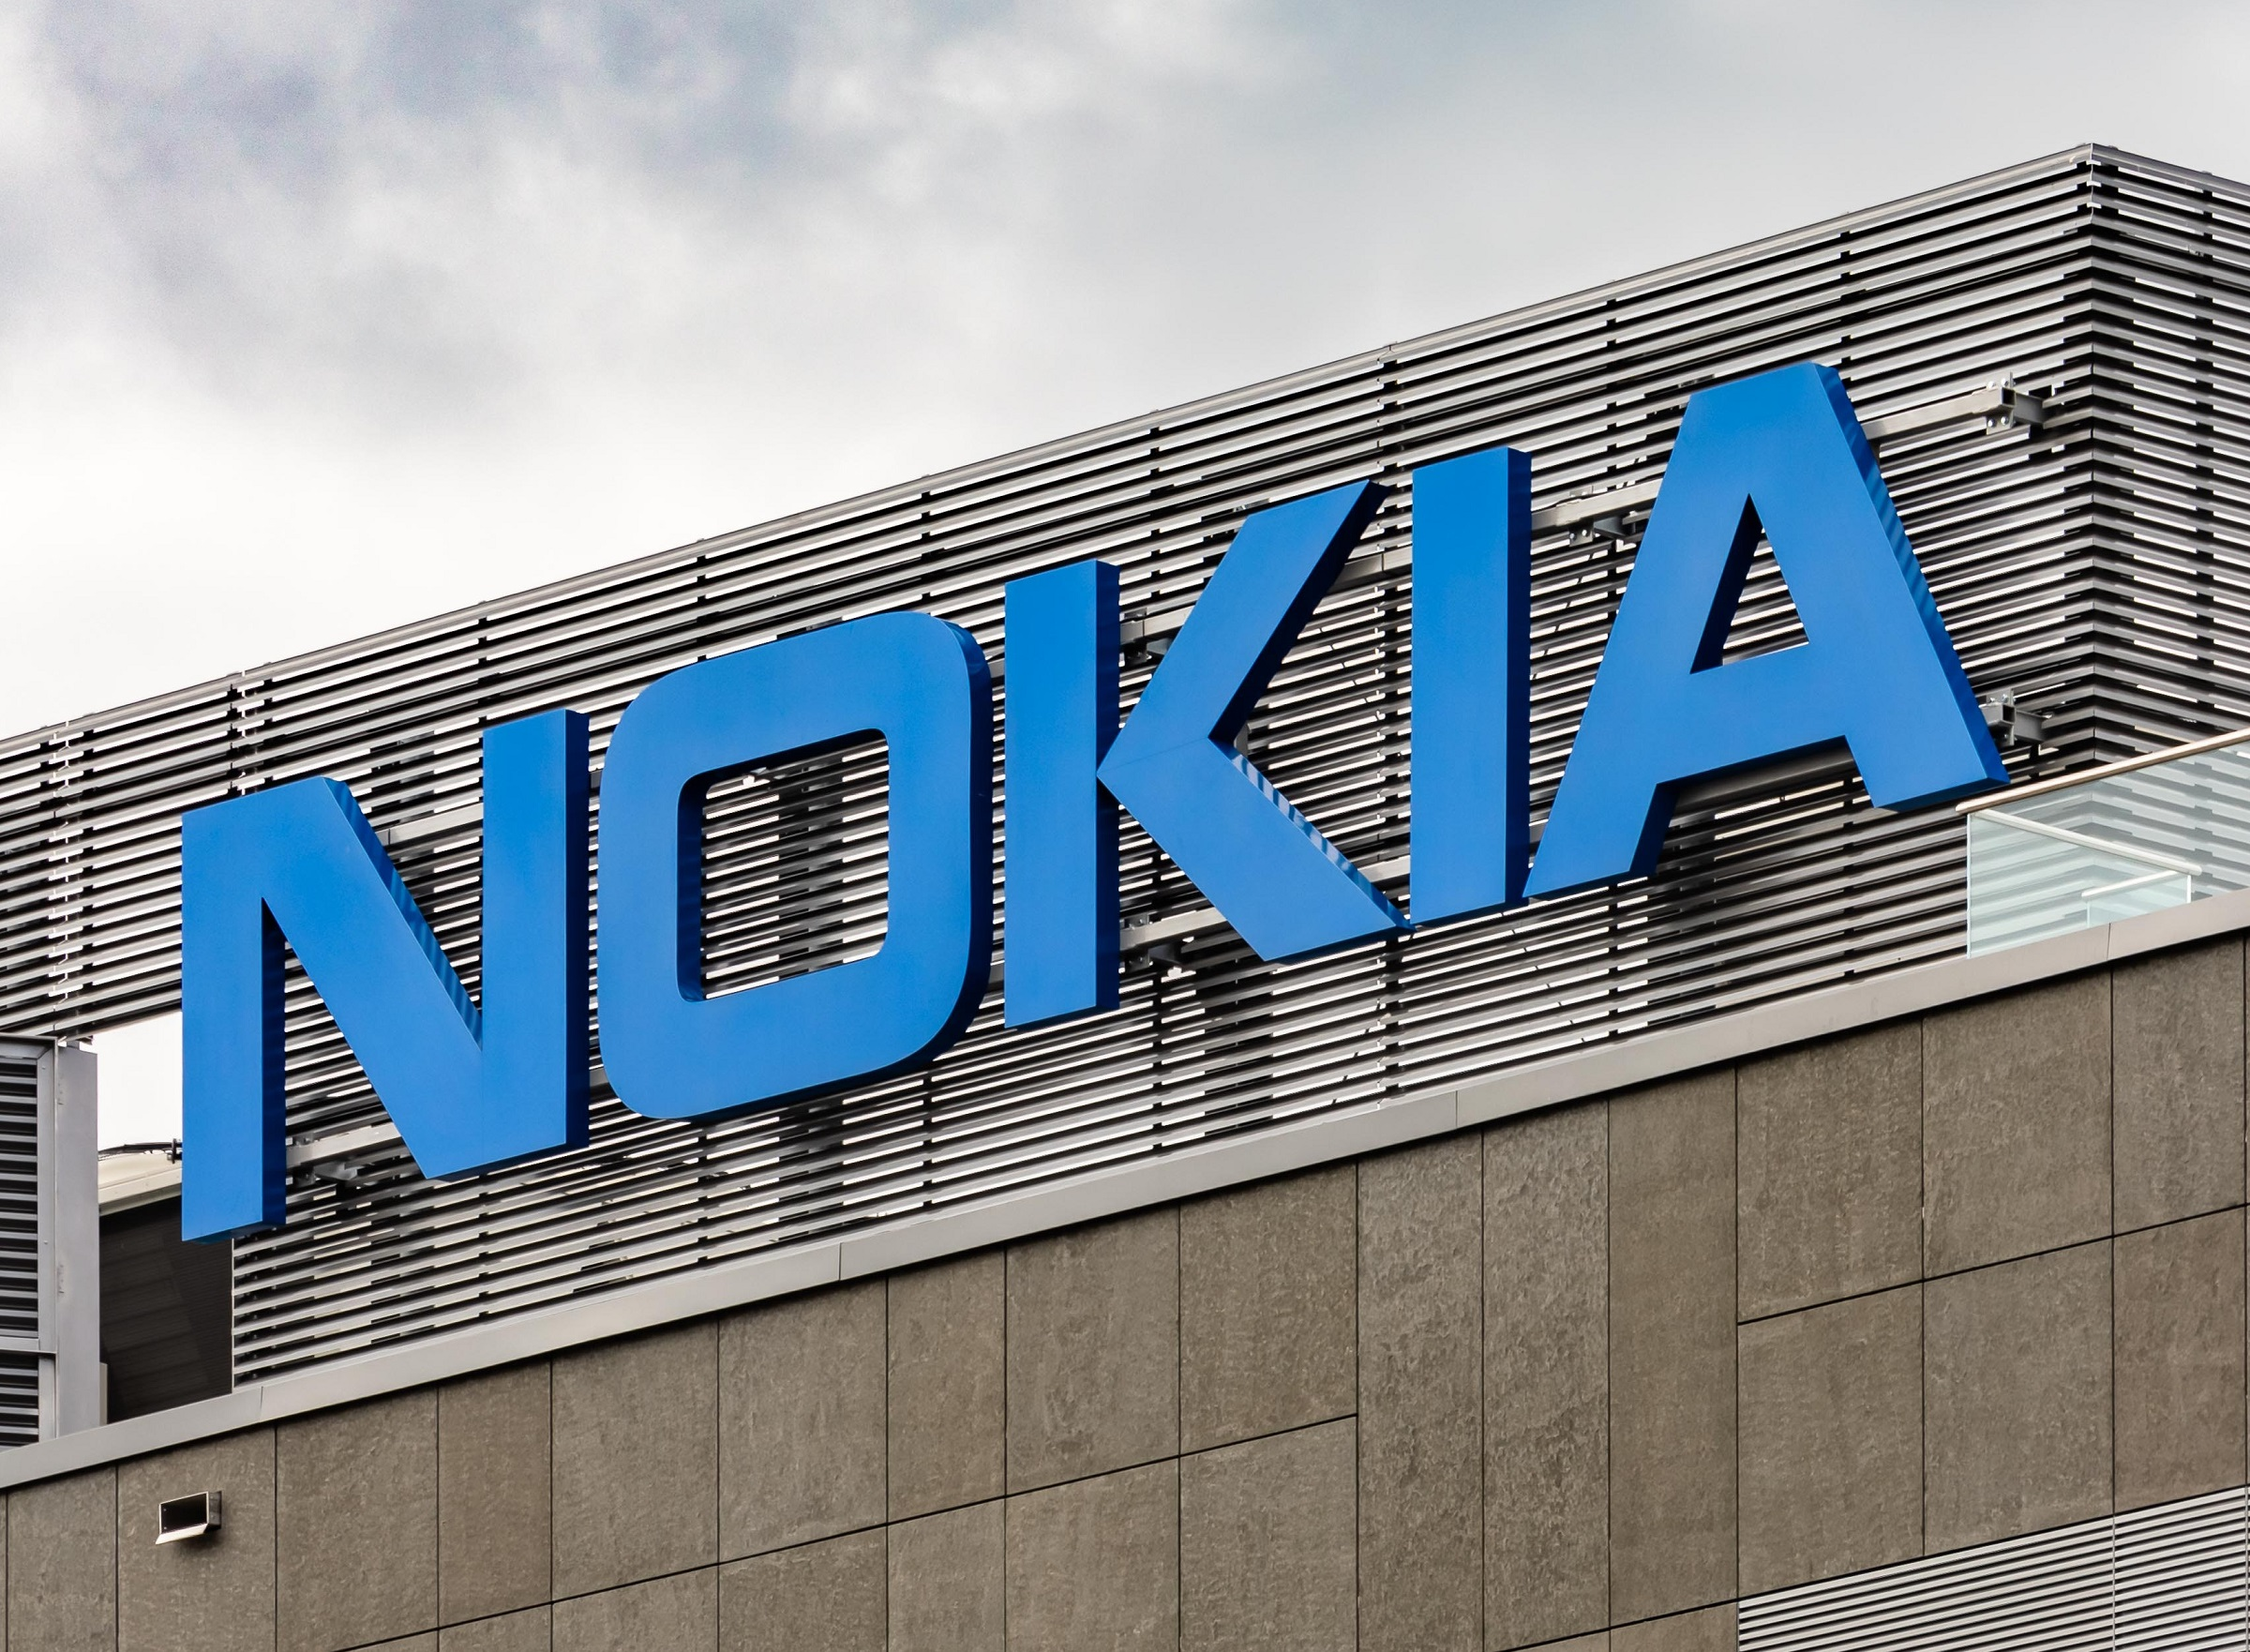 Nokia to provide 5G technology and expertise for US cybersecurity project